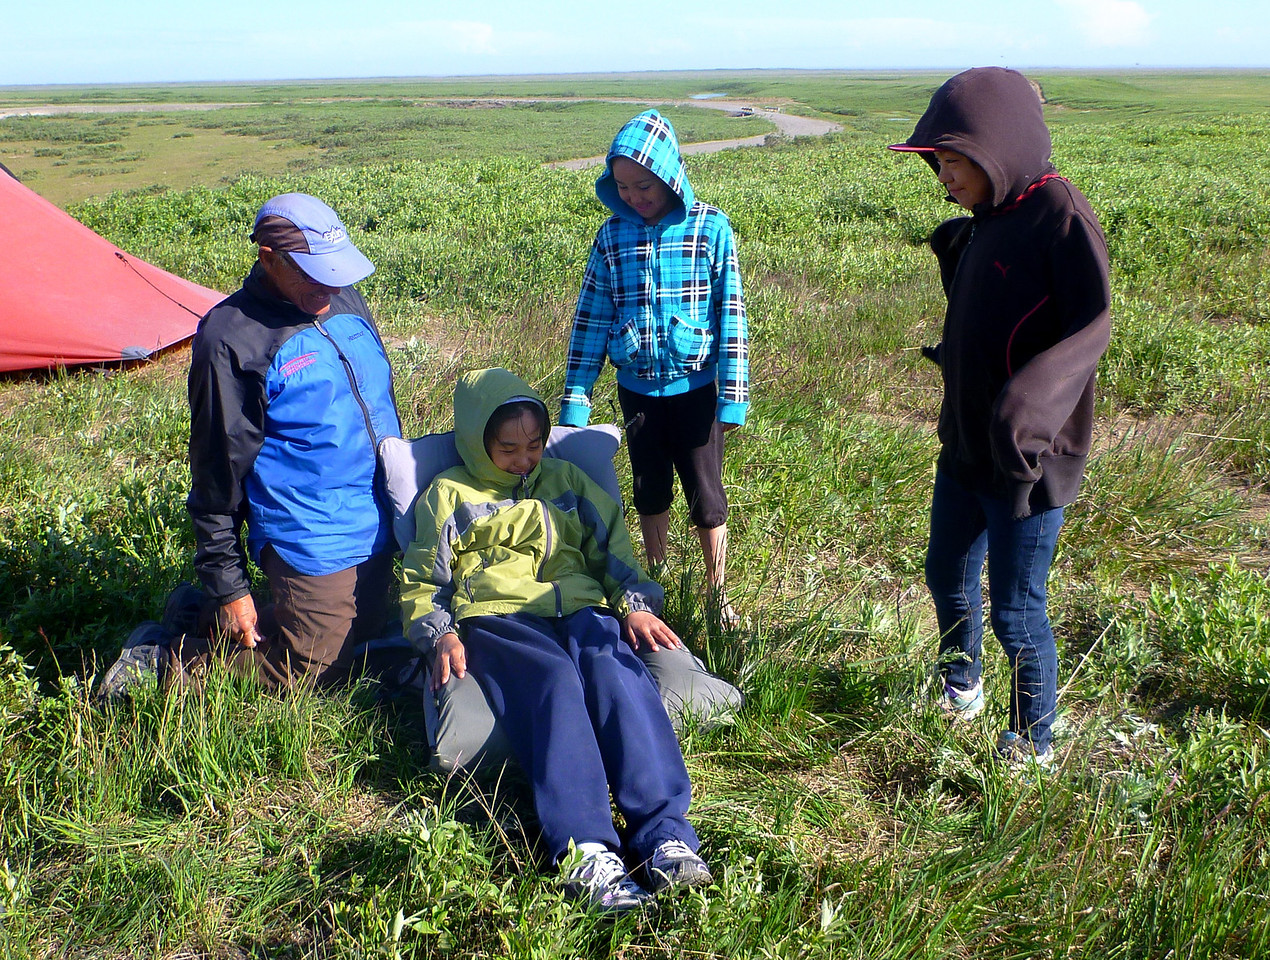 Camp 26 + 27 - Nuiqsut Camp - We had visitors from the village.